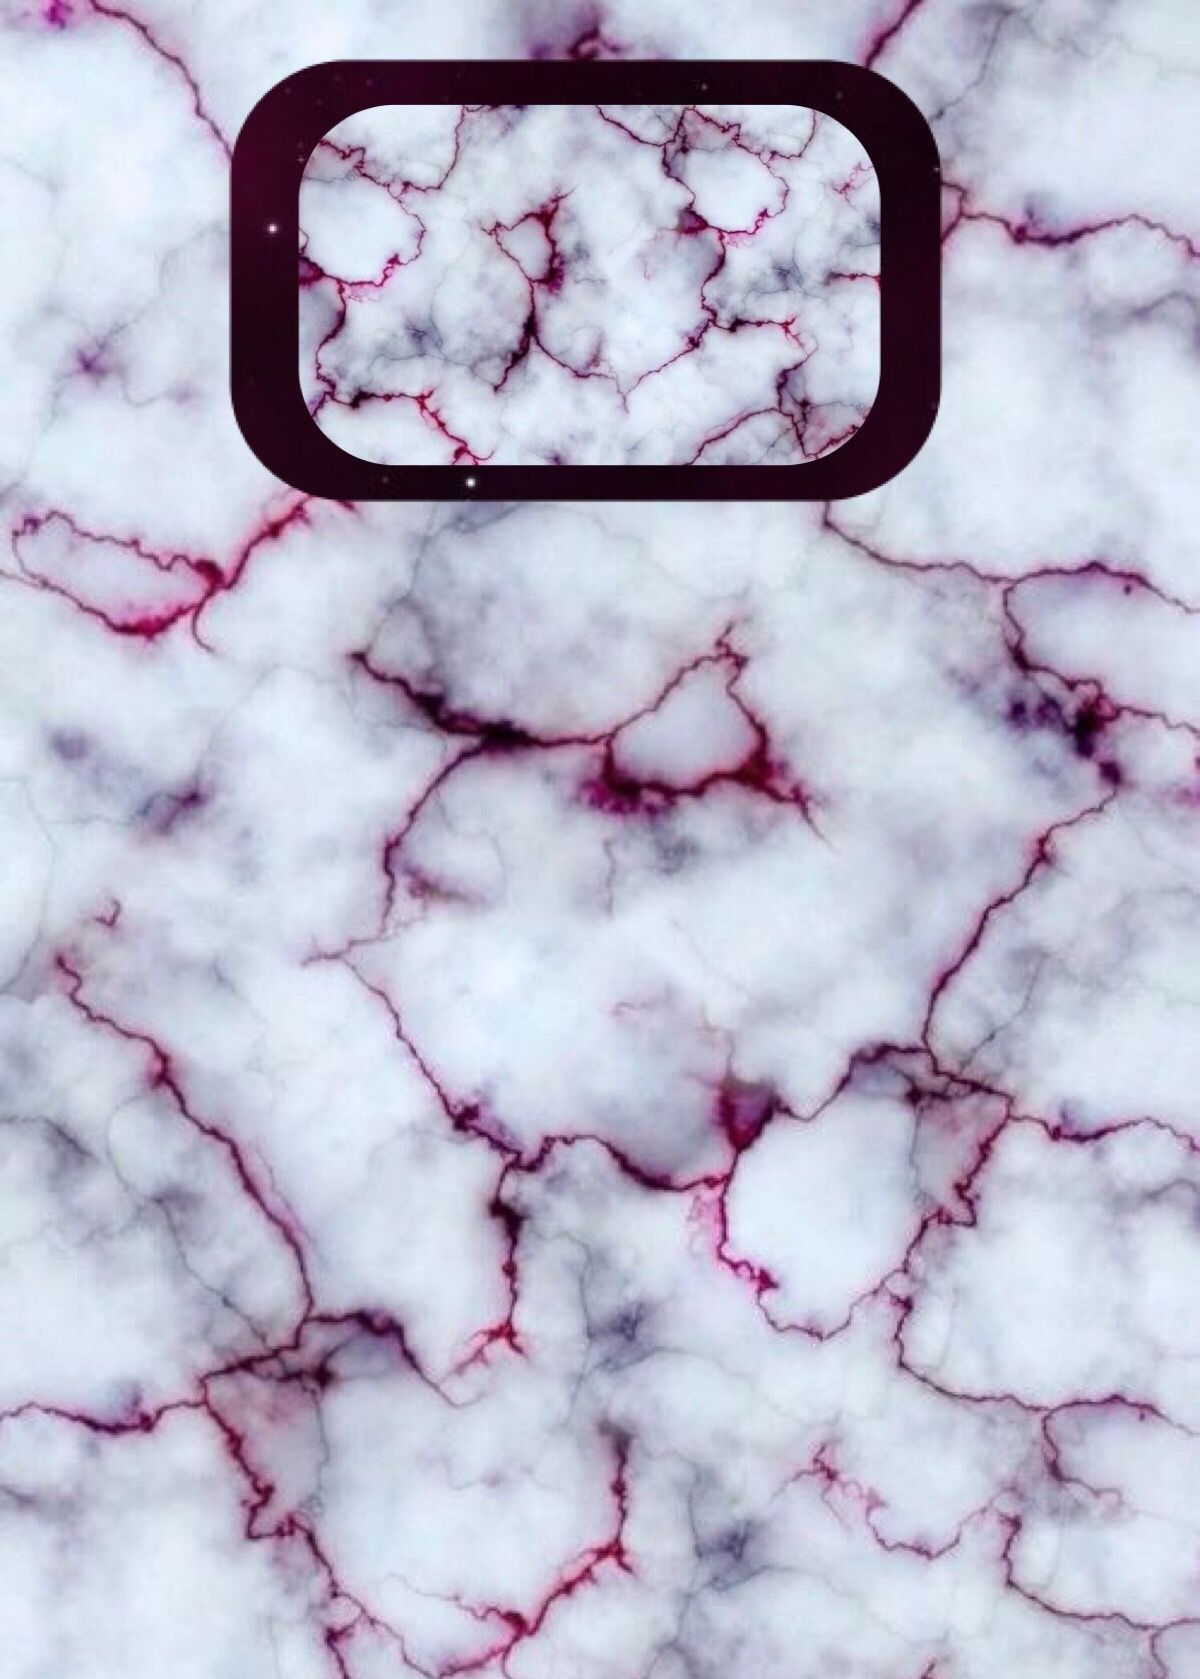 Pin By Liz Olivo On Iphone Lock Screens Marble Iphone Wallpaper